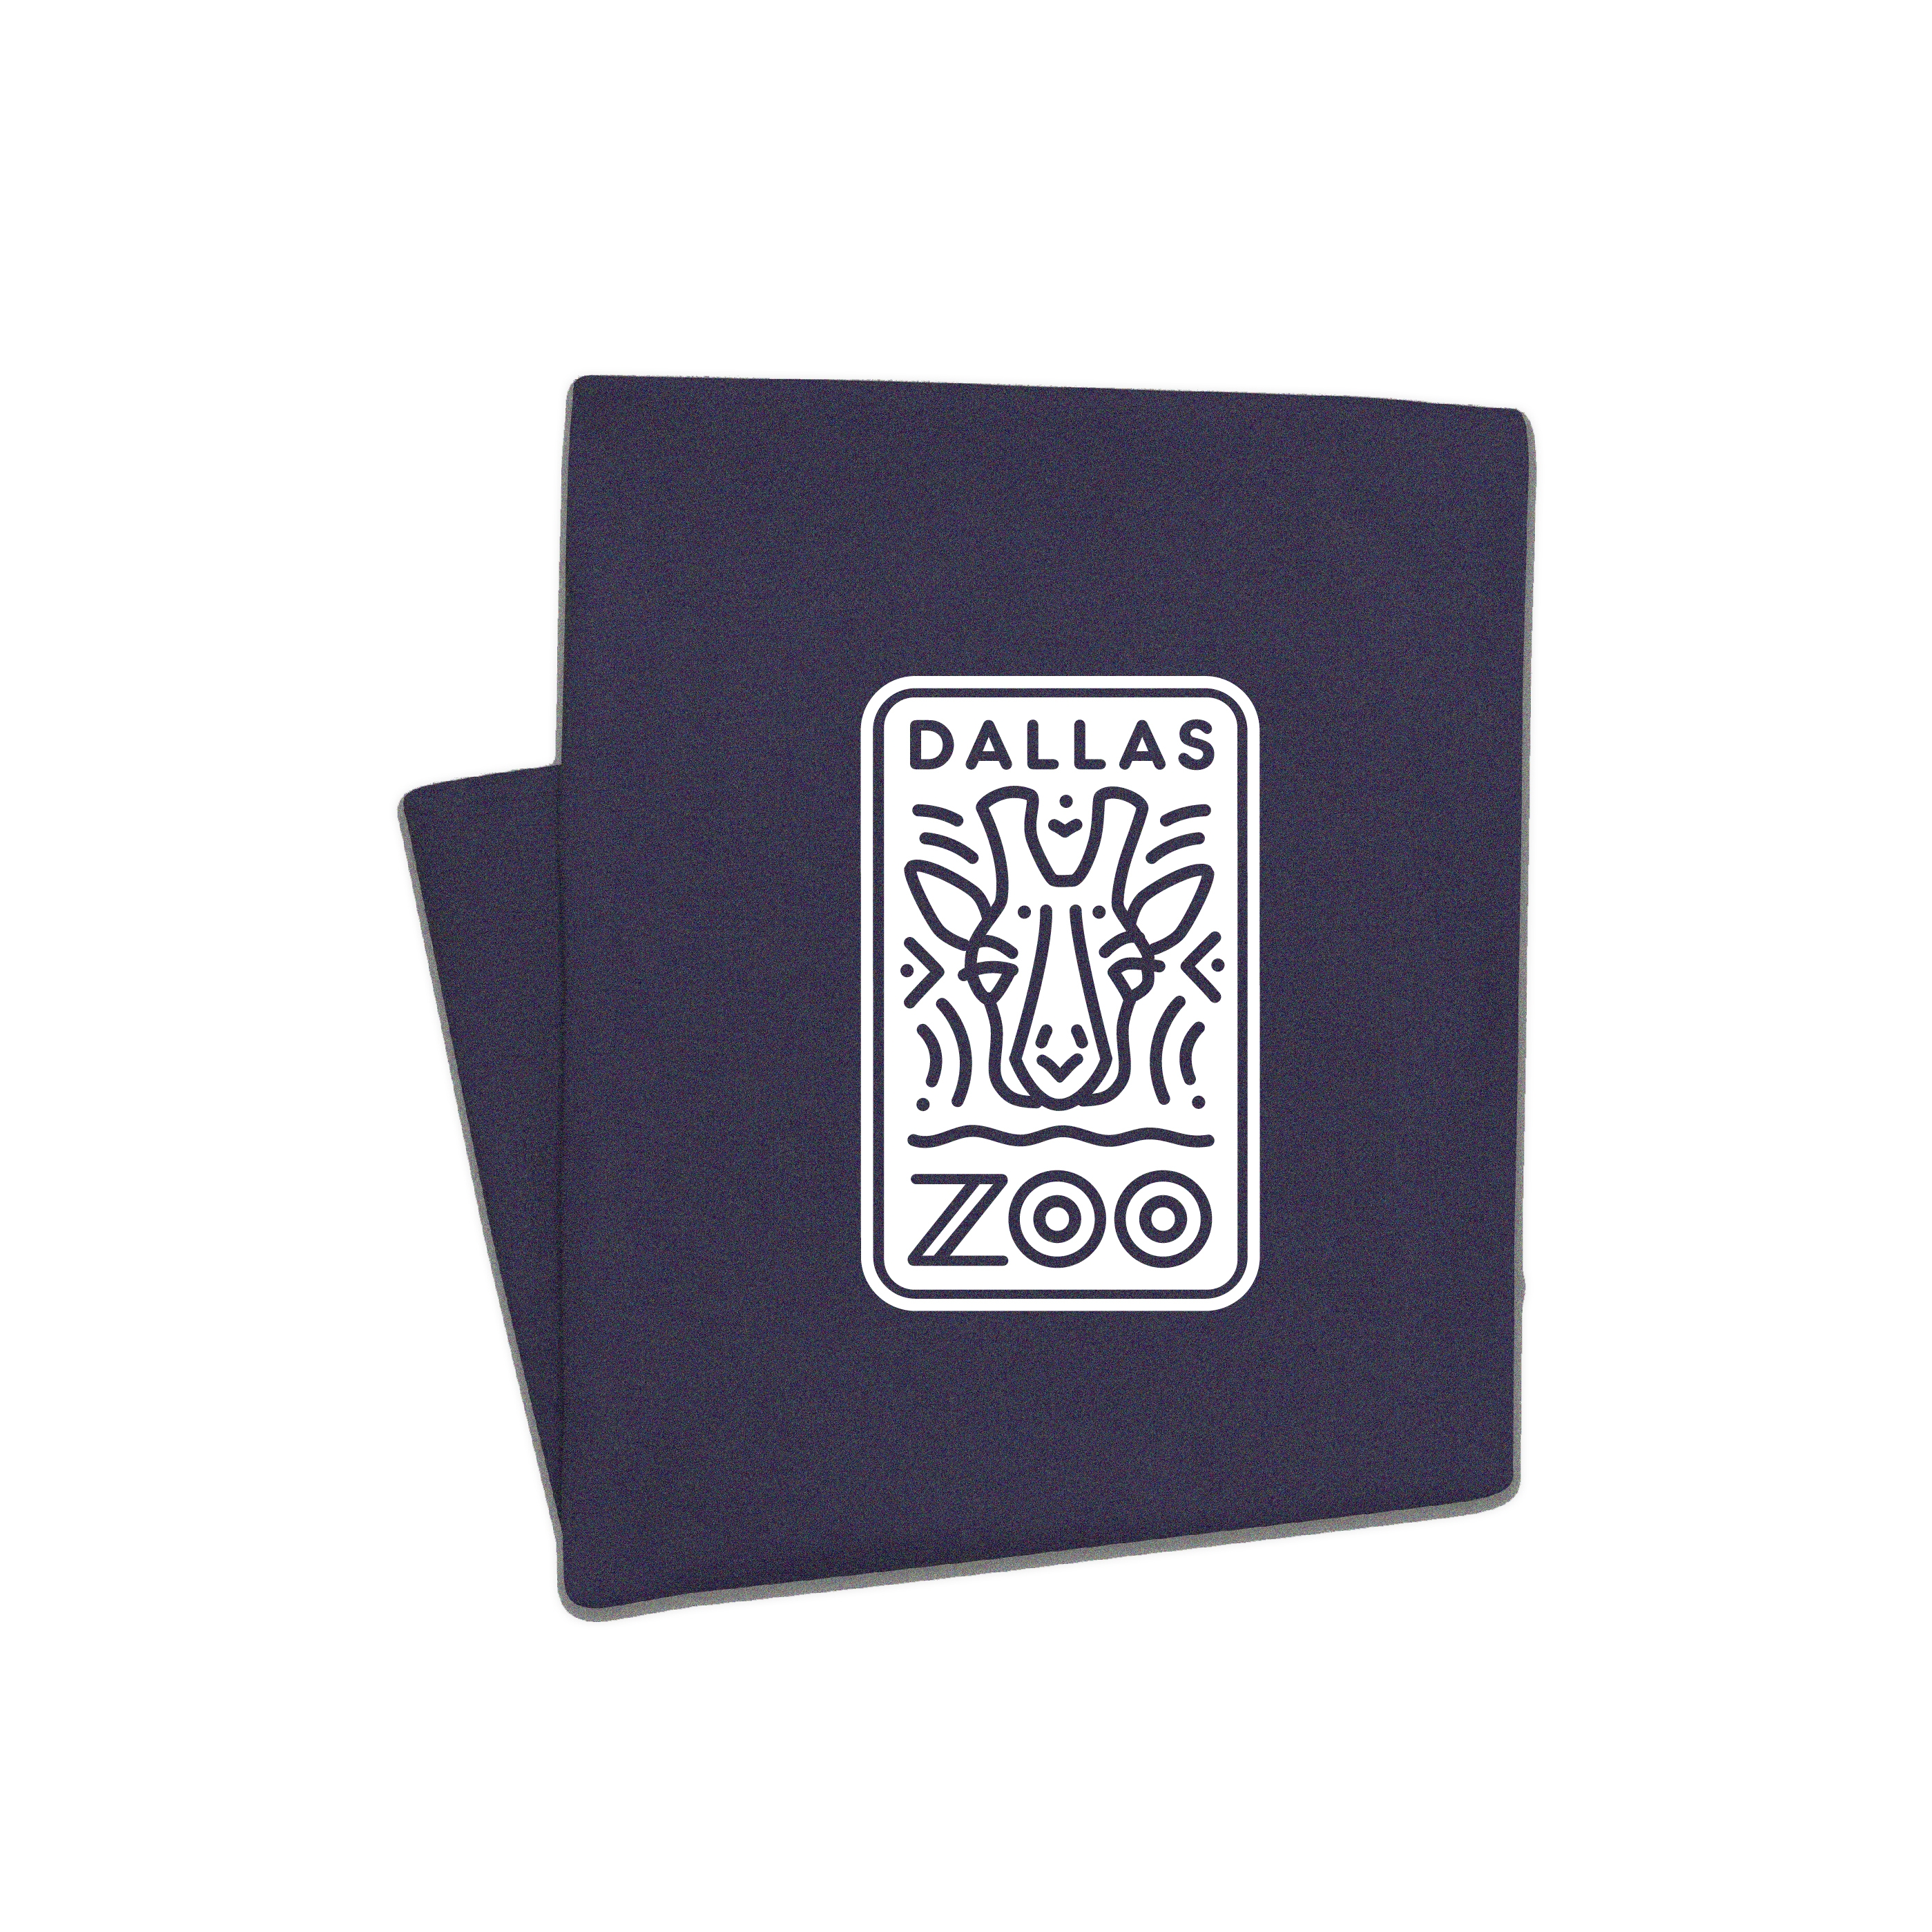 DALLAS LOGO HEATHER NAVY BLANKET